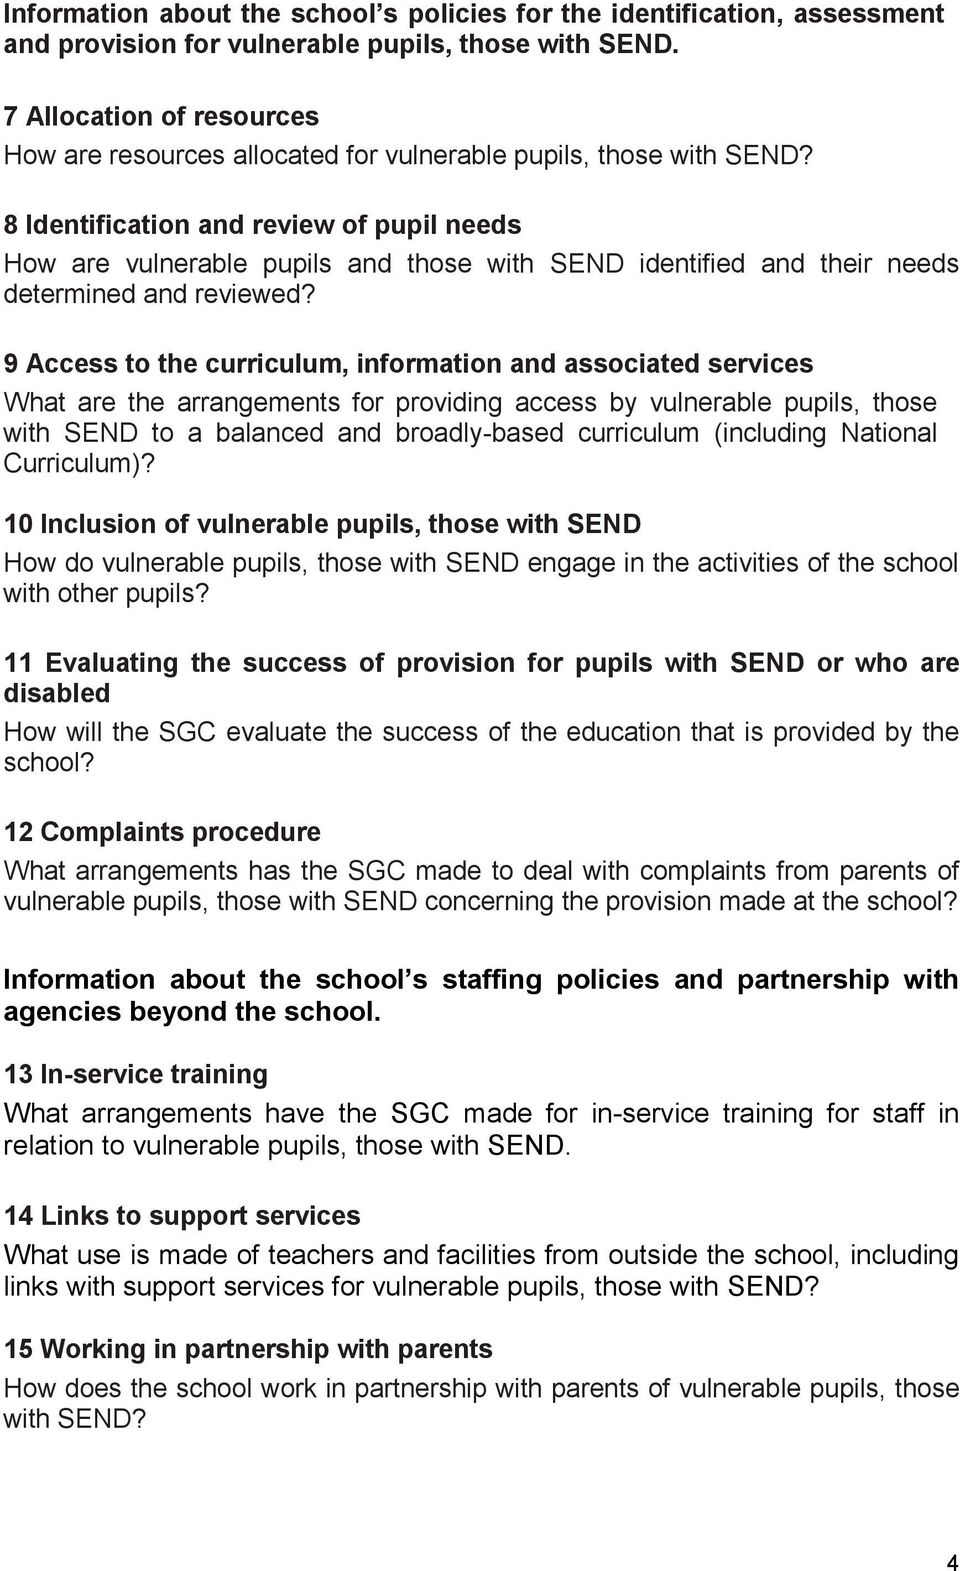 8 Identification and review of pupil needs How are vulnerable pupils and those with SEND identified and their needs determined and reviewed?